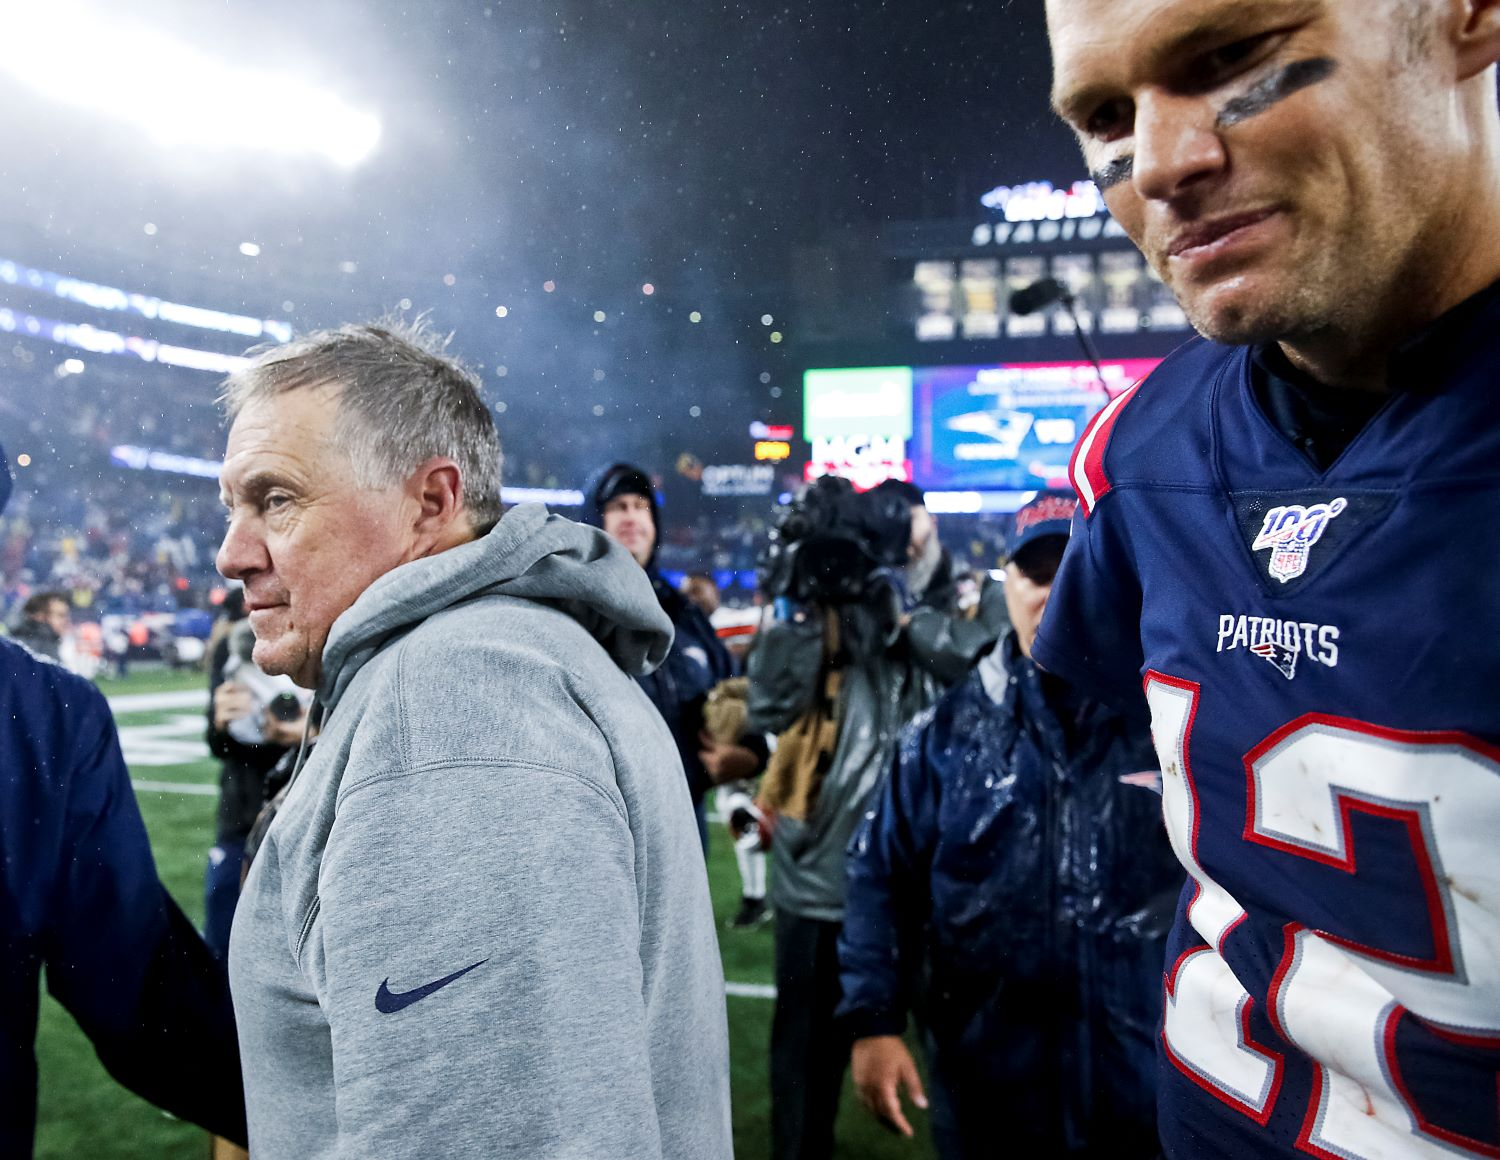 Bill Belichick Can Get the Last Laugh Over Tom Brady With Some Help From the Detroit Lions